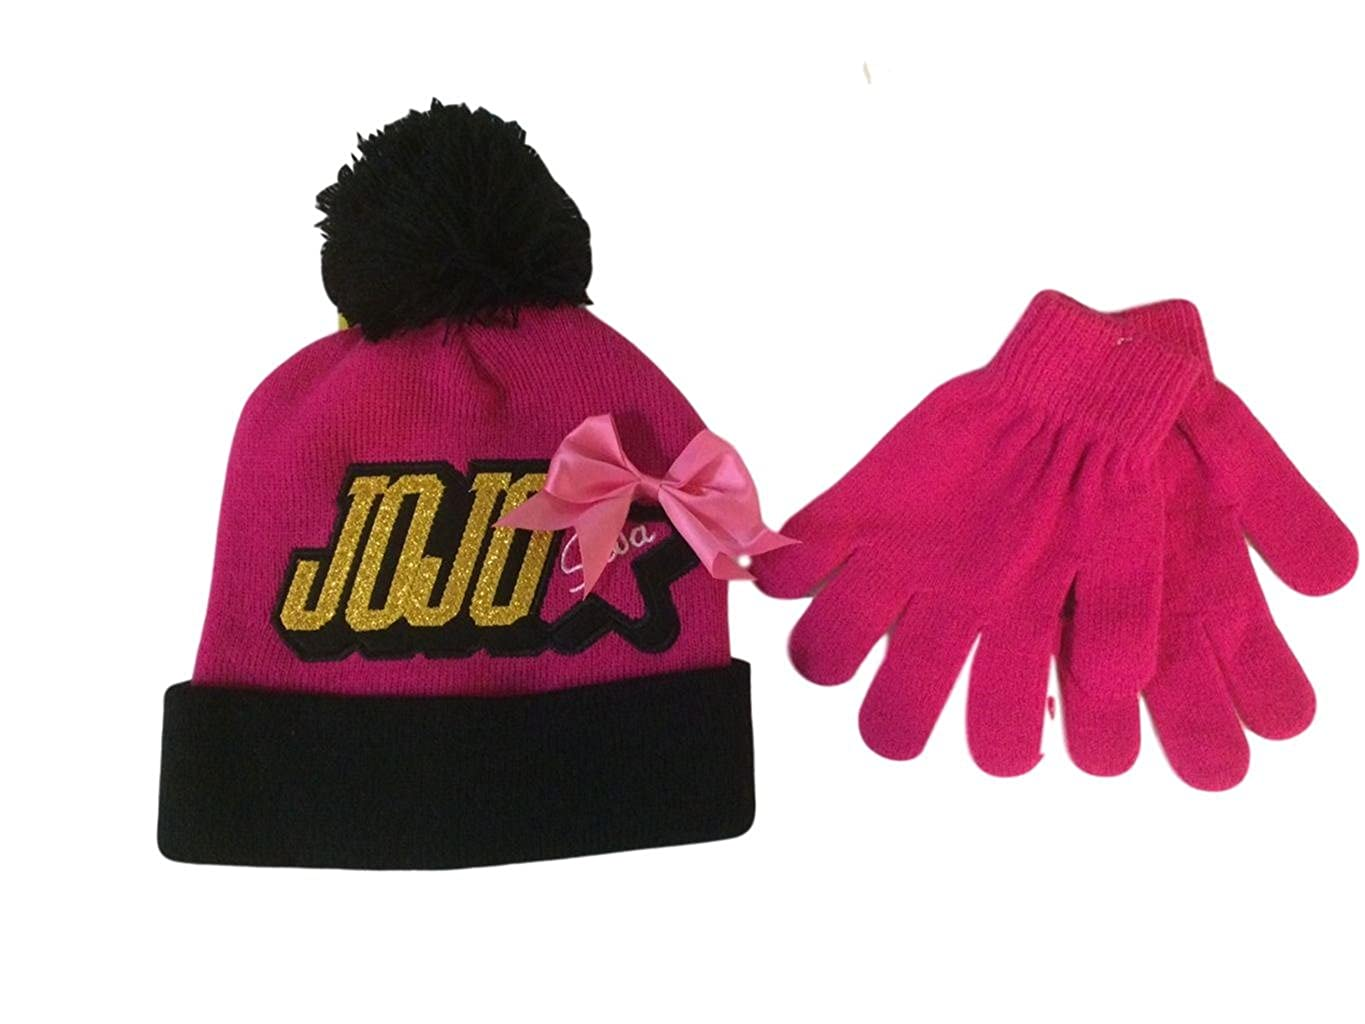 5b564d7d319 Nick Jr JoJo Siwa Knit Beanie Hat and Glove Set Pink Bow Winter Cold  Weather Girls  Amazon.co.uk  Clothing